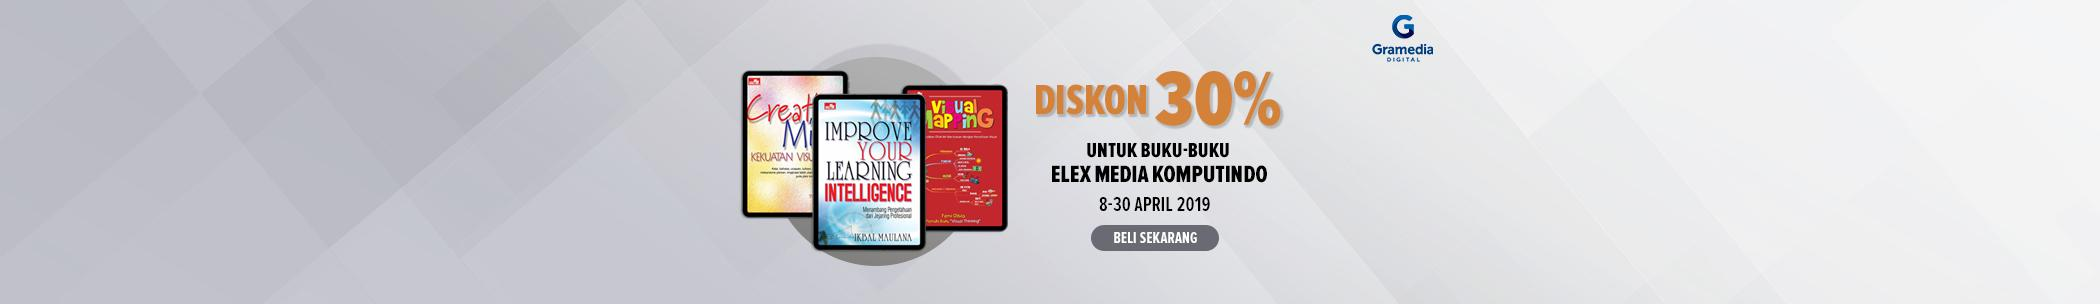 Diskon internal publisher - Elex Media Computindo